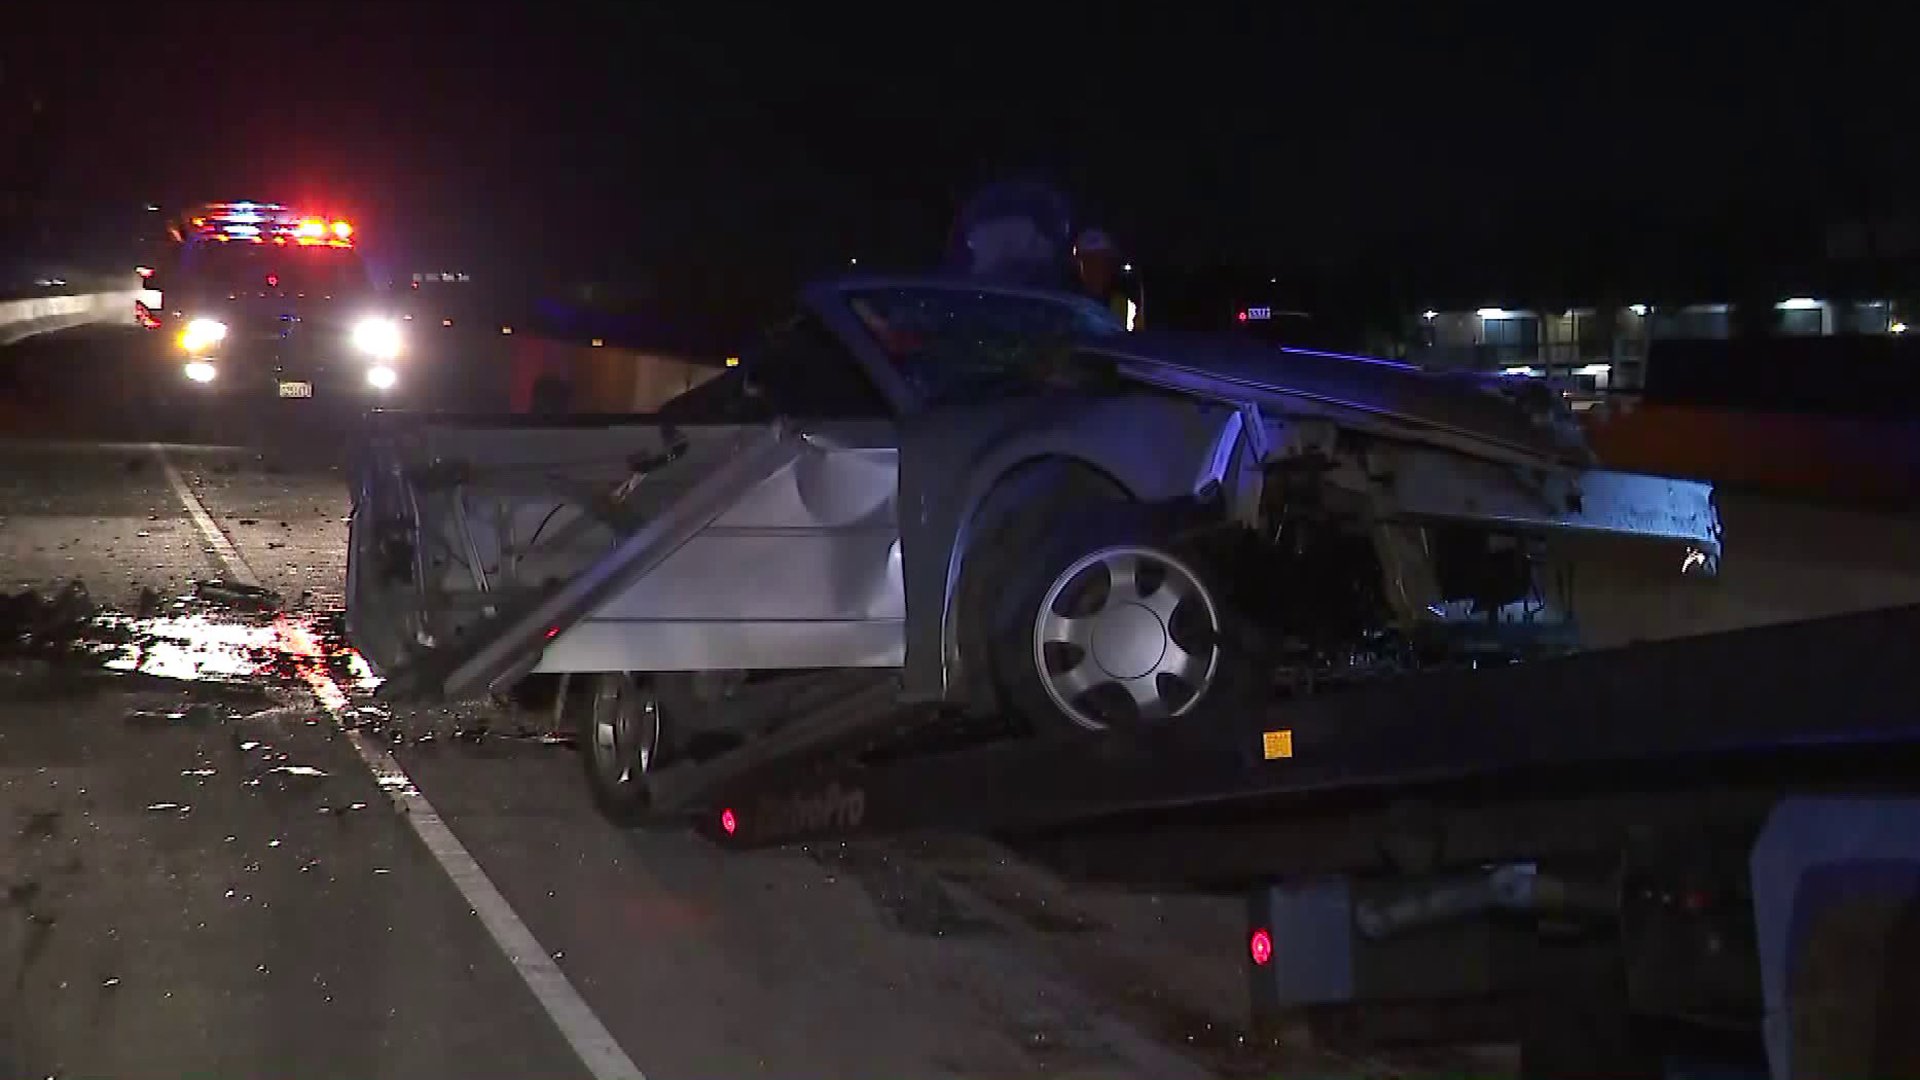 A badly-damaged vehicle involved in a wrong-way crash in Santa Ana is towed from the 55 Freeway on Jan. 5, 2018. (Credit: KTLA)